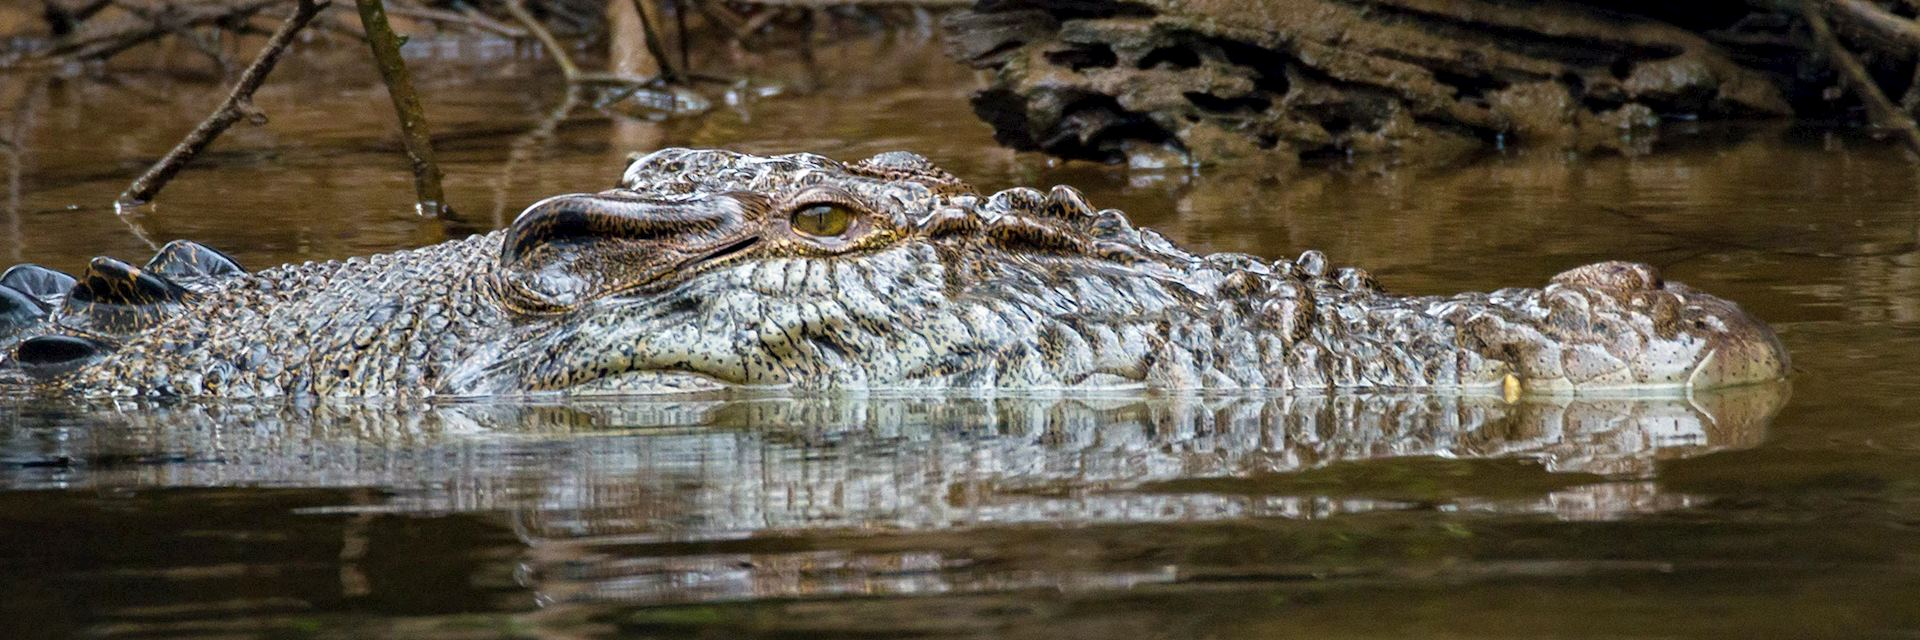 Saltwater crocodile, Daintree Forest